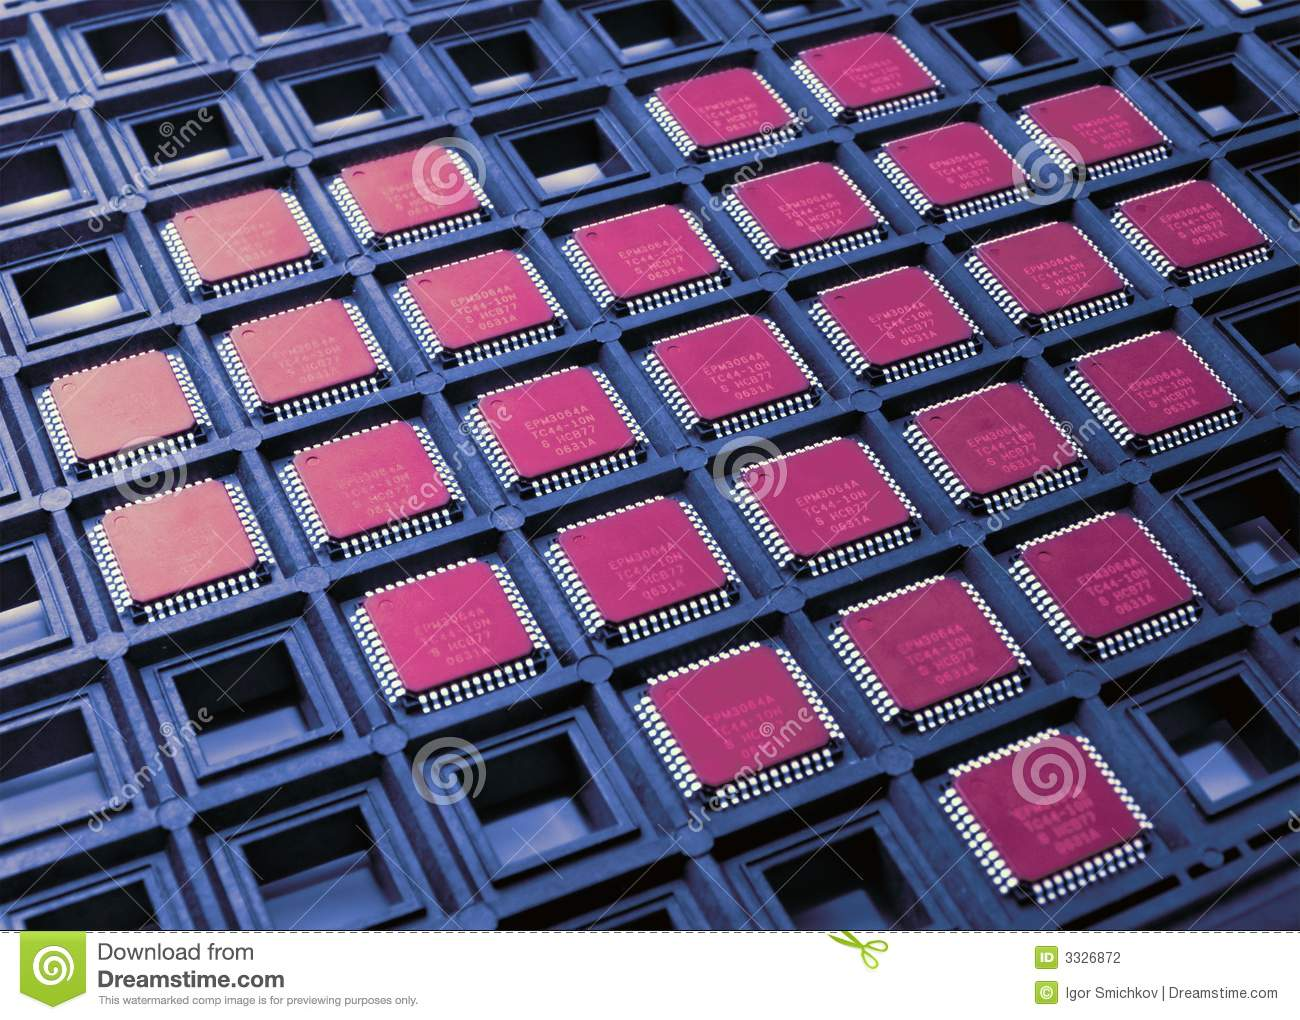 Heart from cpu chips stock photo  Image of cells, background